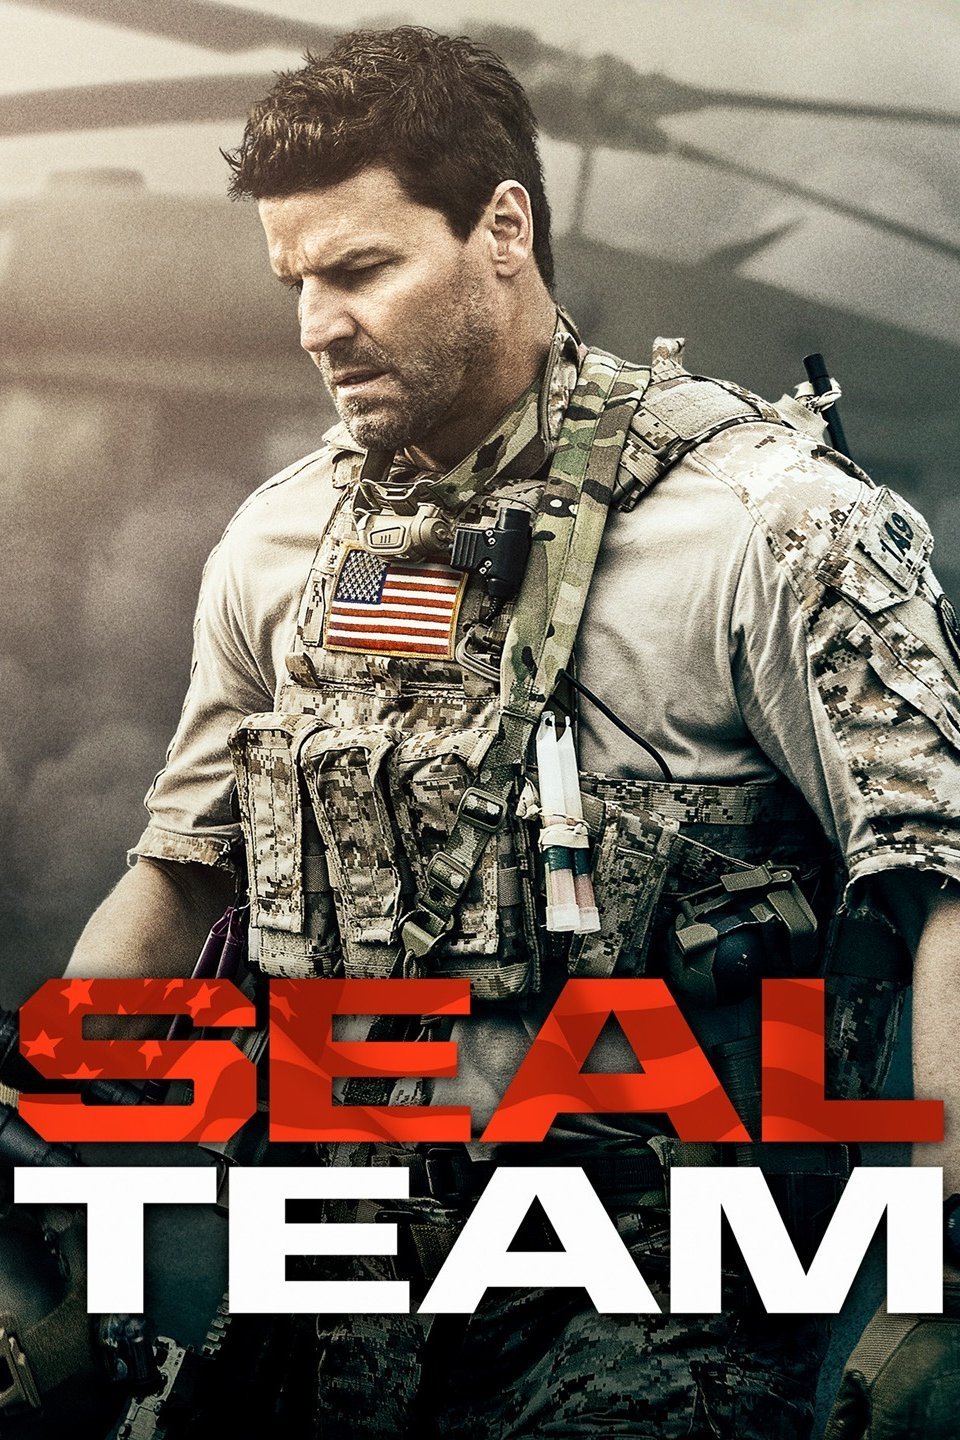 SEAL Team Season 1 Episode 16 Download HDTV